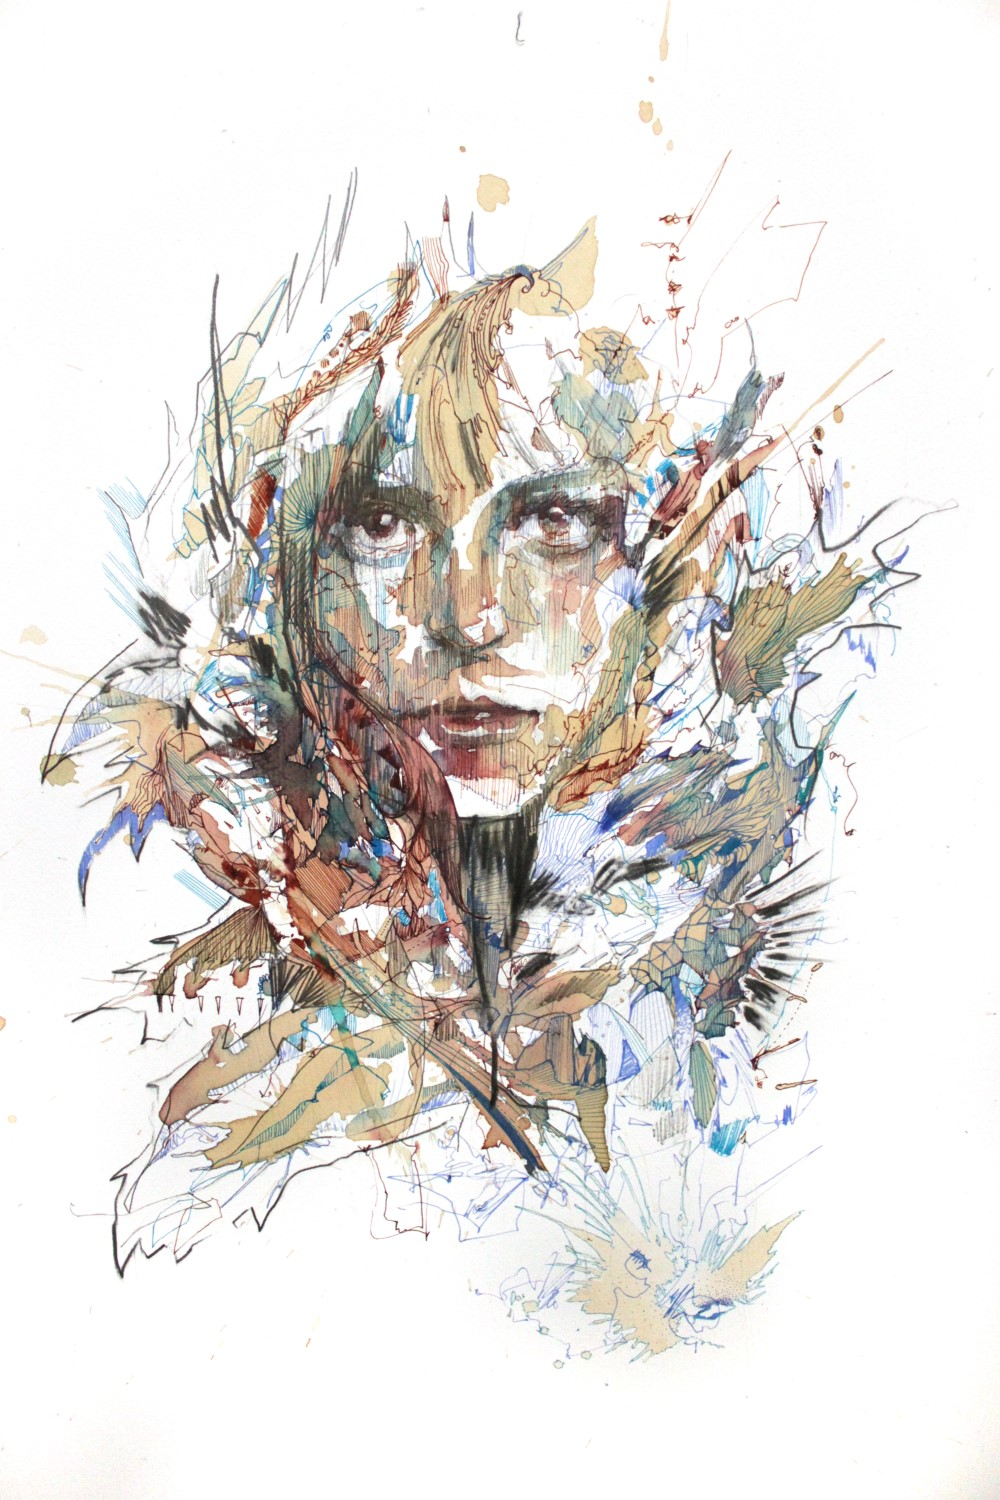 Take Cover by Carne Griffiths